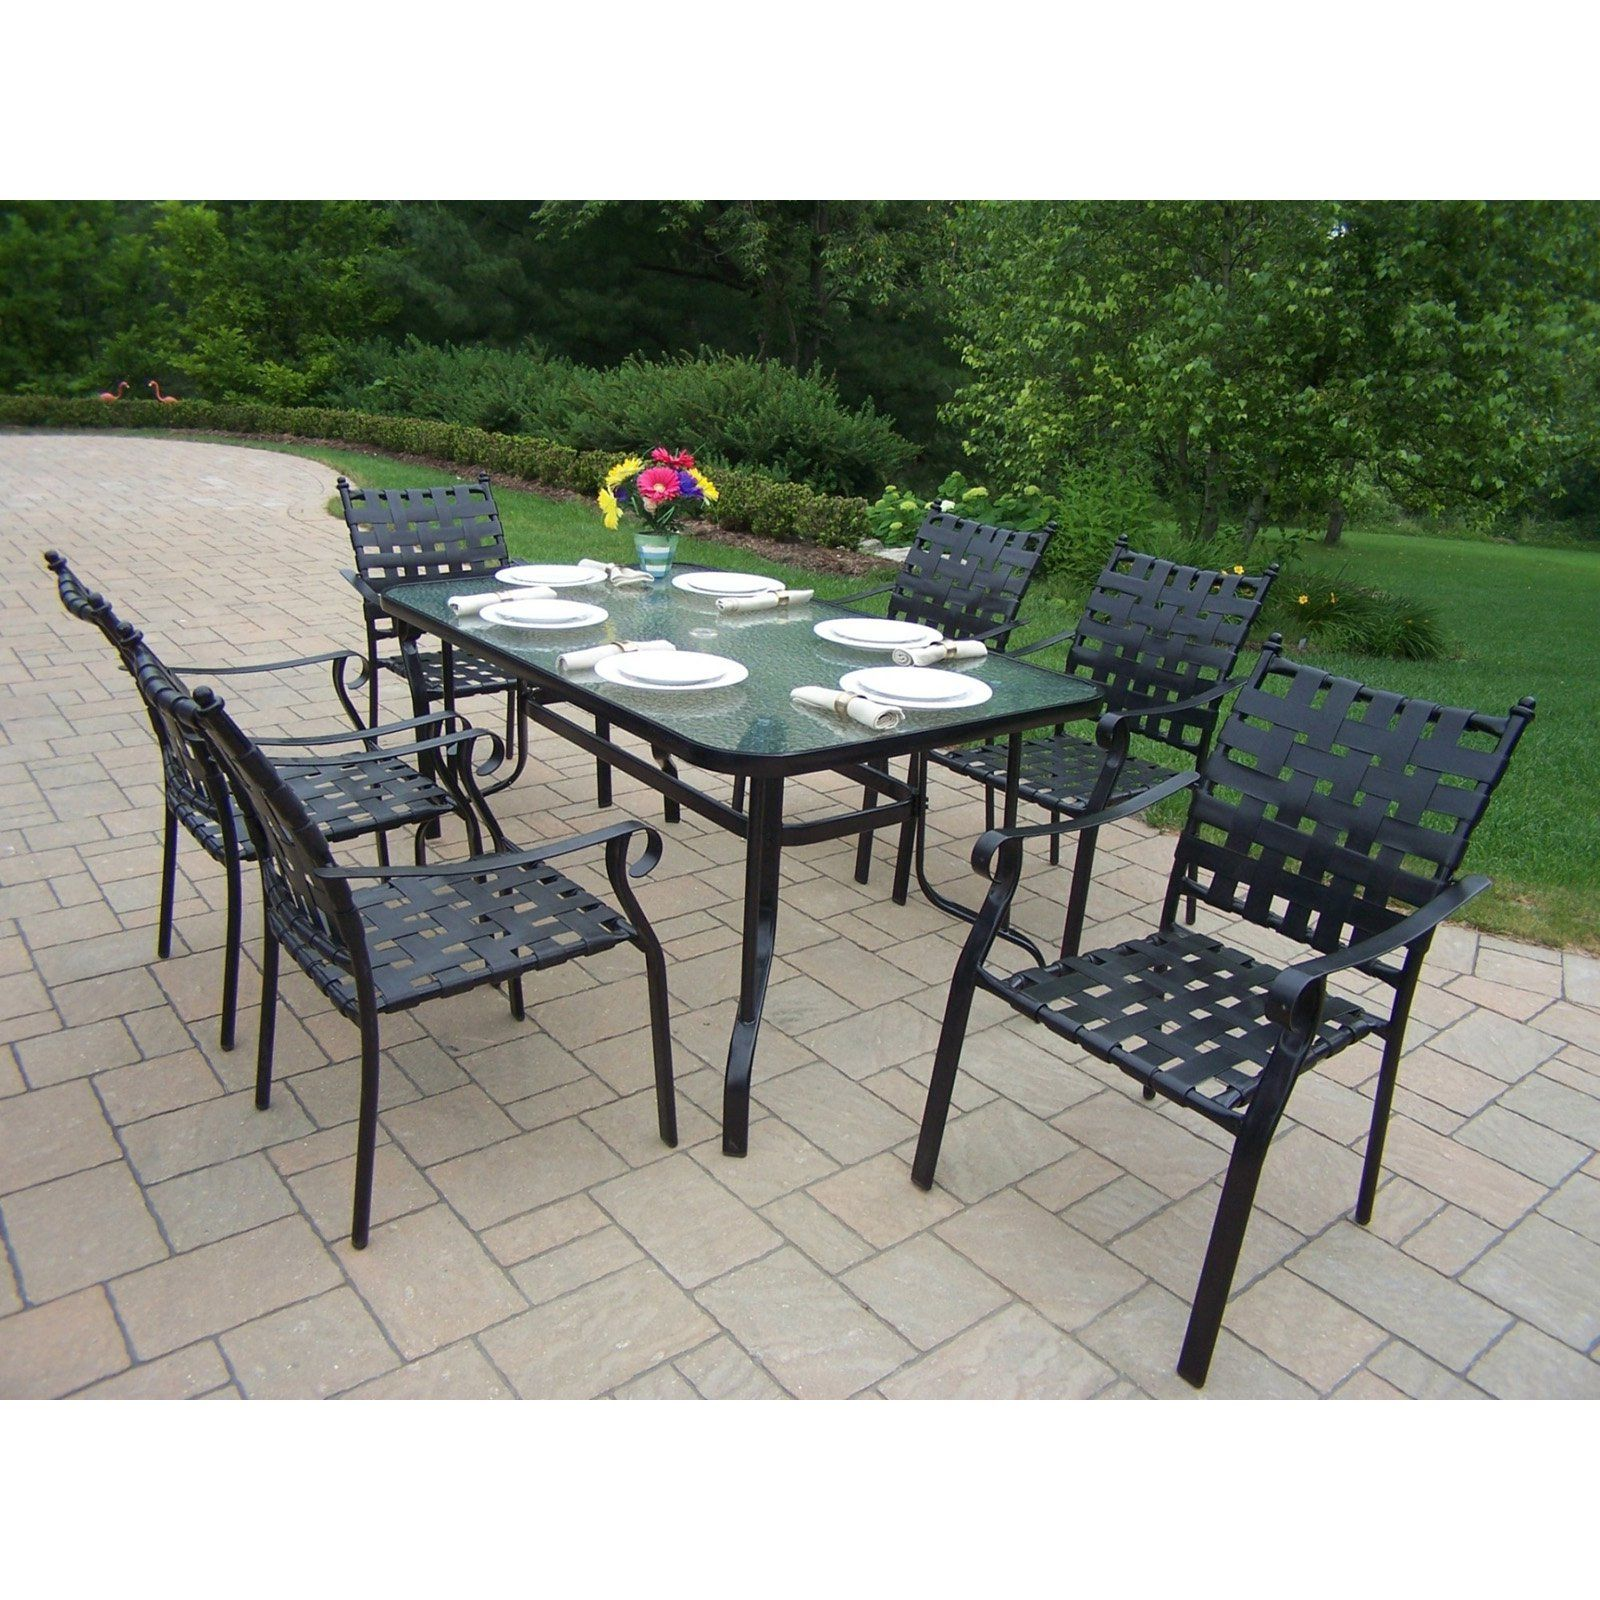 Oakland Living Web 7 Piece Patio Dining Set   The Open Space And Fresh Air  Of Outdoor Dining Can Automatically Create An Unhurried Air Of Relaxation  No ...